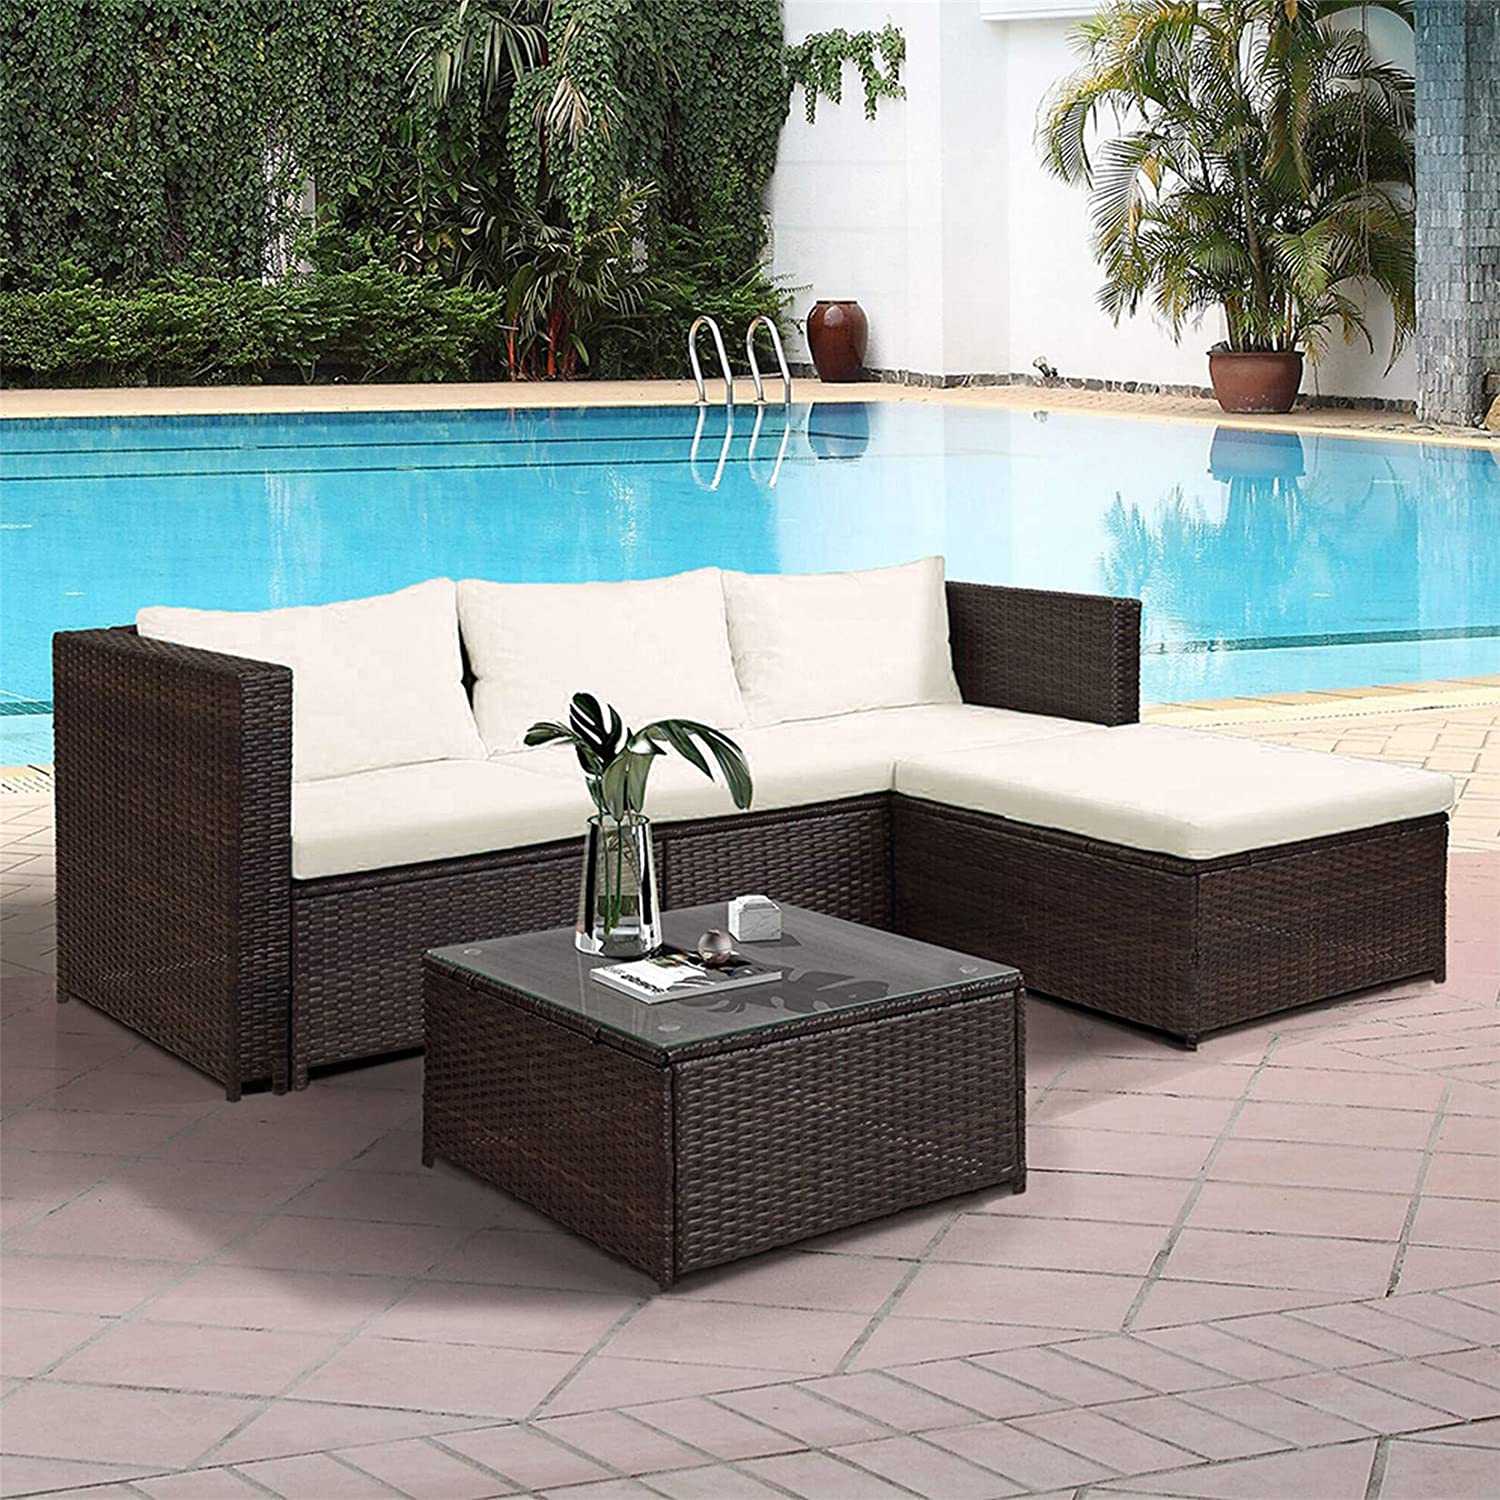 Patio Sectional Sofa Set, 5pcs Outdoor Patio Furniture Sets, PE Rattan Sectional Wicker Sofa Set with Coffee Table, All-Weather Resistant, Beige Cushion